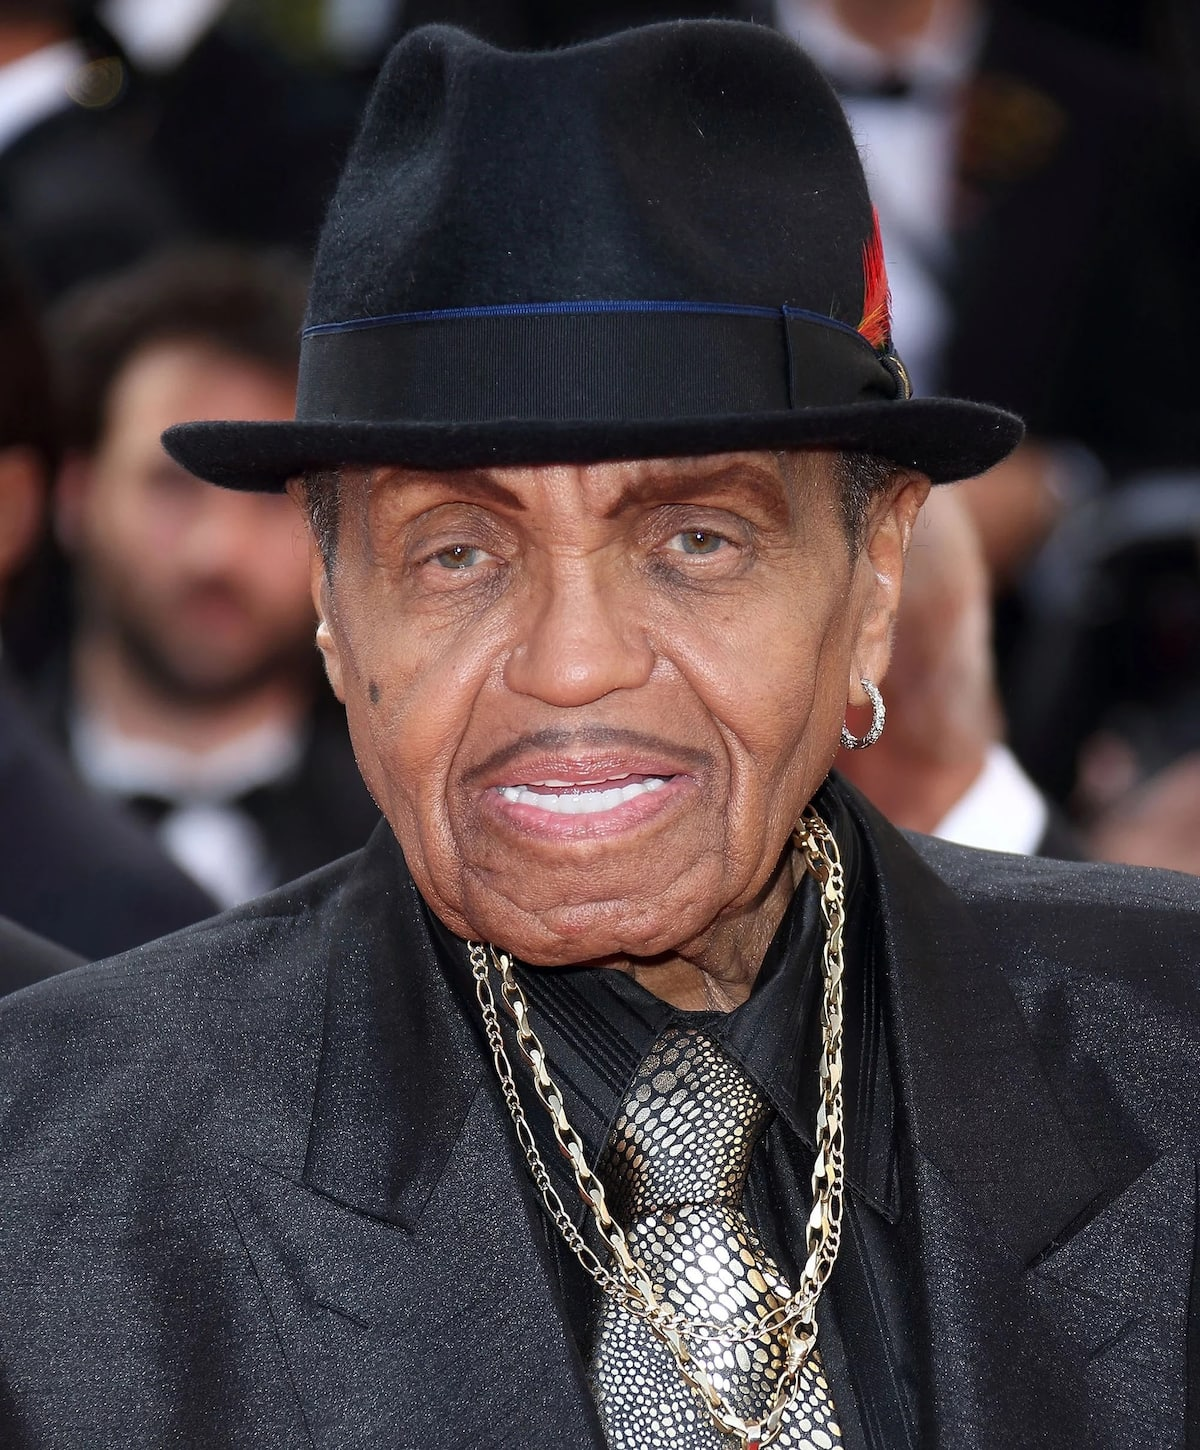 Michael Jackson's father dies days after son's memorial